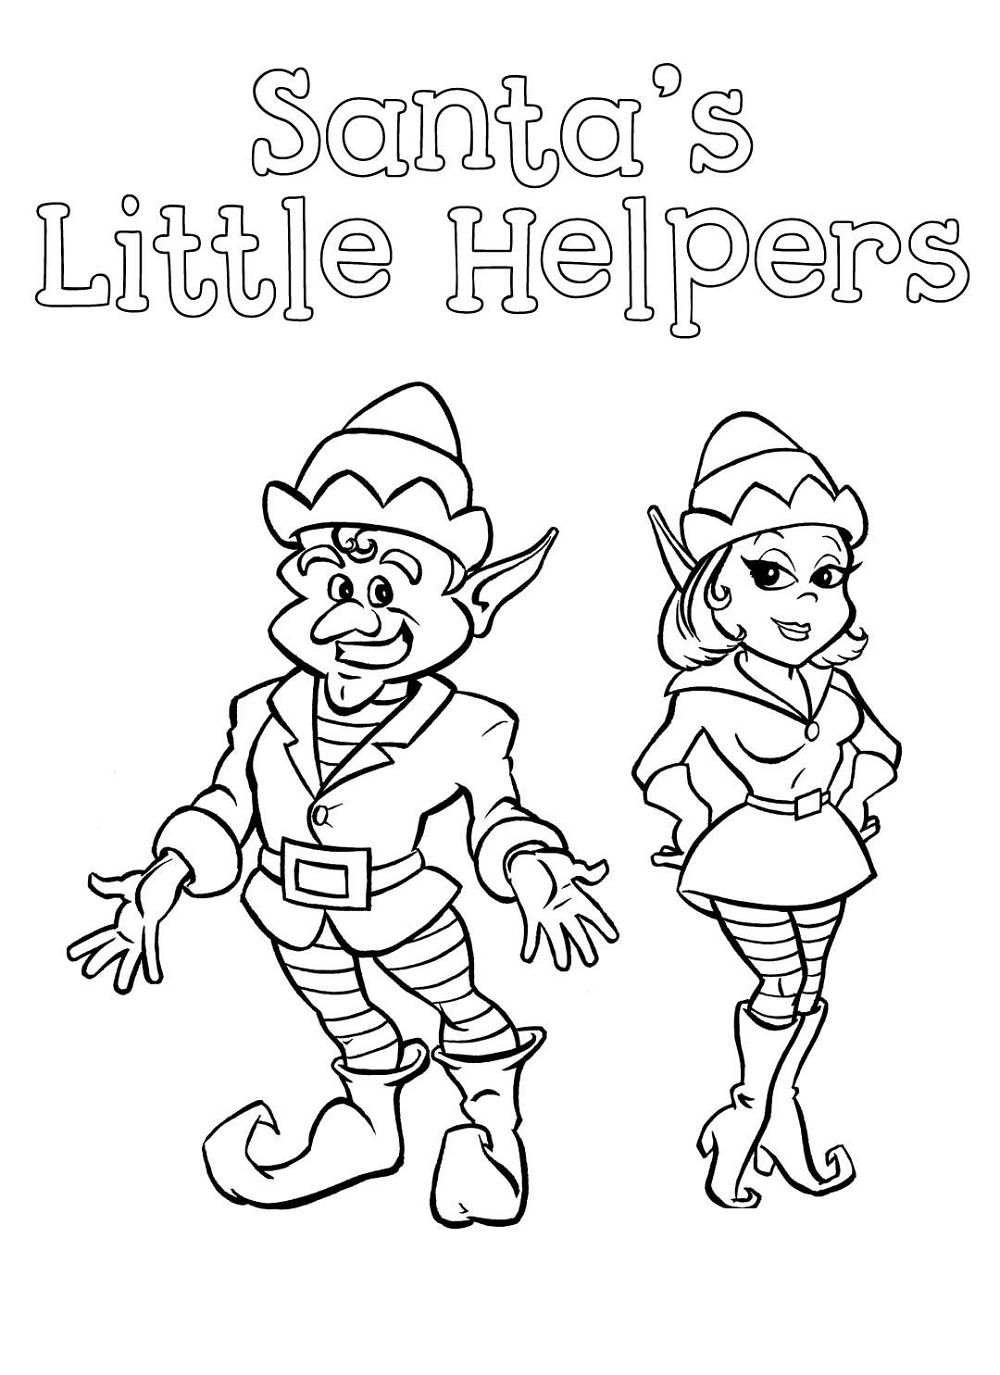 Elf on the shelf printable coloring pages pictures